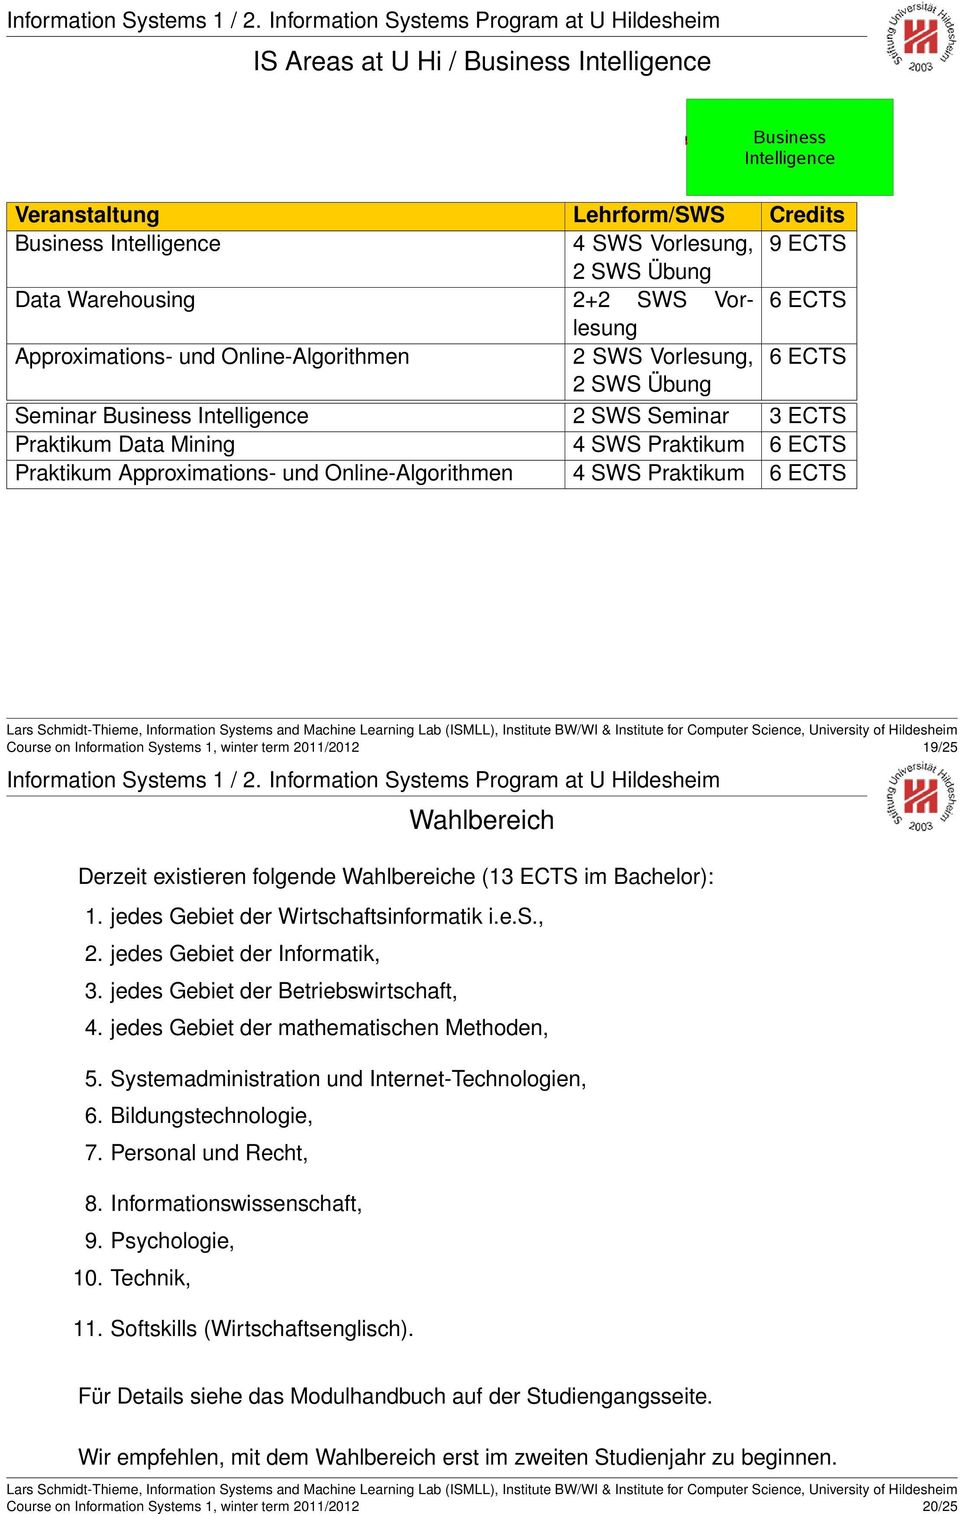 and Decision Support Business Intelligence Veranstaltung Lehrform/SWS Credits Business Intelligence 4 SWS Vorlesung, 9 ECTS 2 SWS Übung Data Warehousing 2+2 SWS Vorlesung 6 ECTS Approximations- und